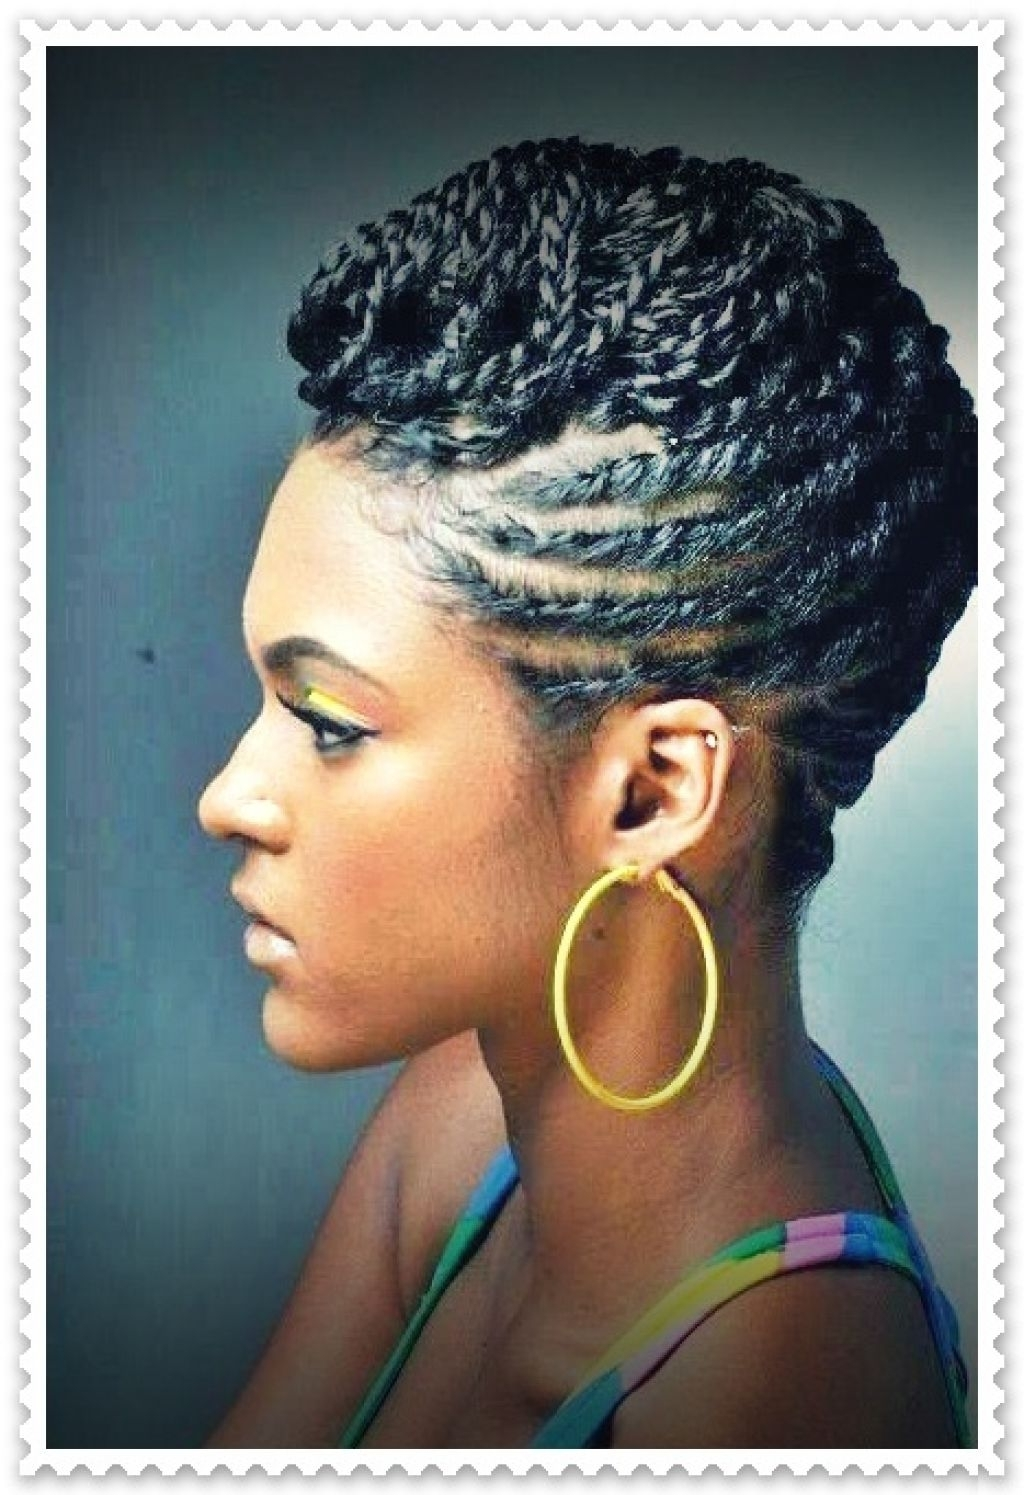 Braided Black Hairstyles Ideas With Braided Black Hairstyles Inside Elegant Cornrow Updo Hairstyles (View 4 of 15)